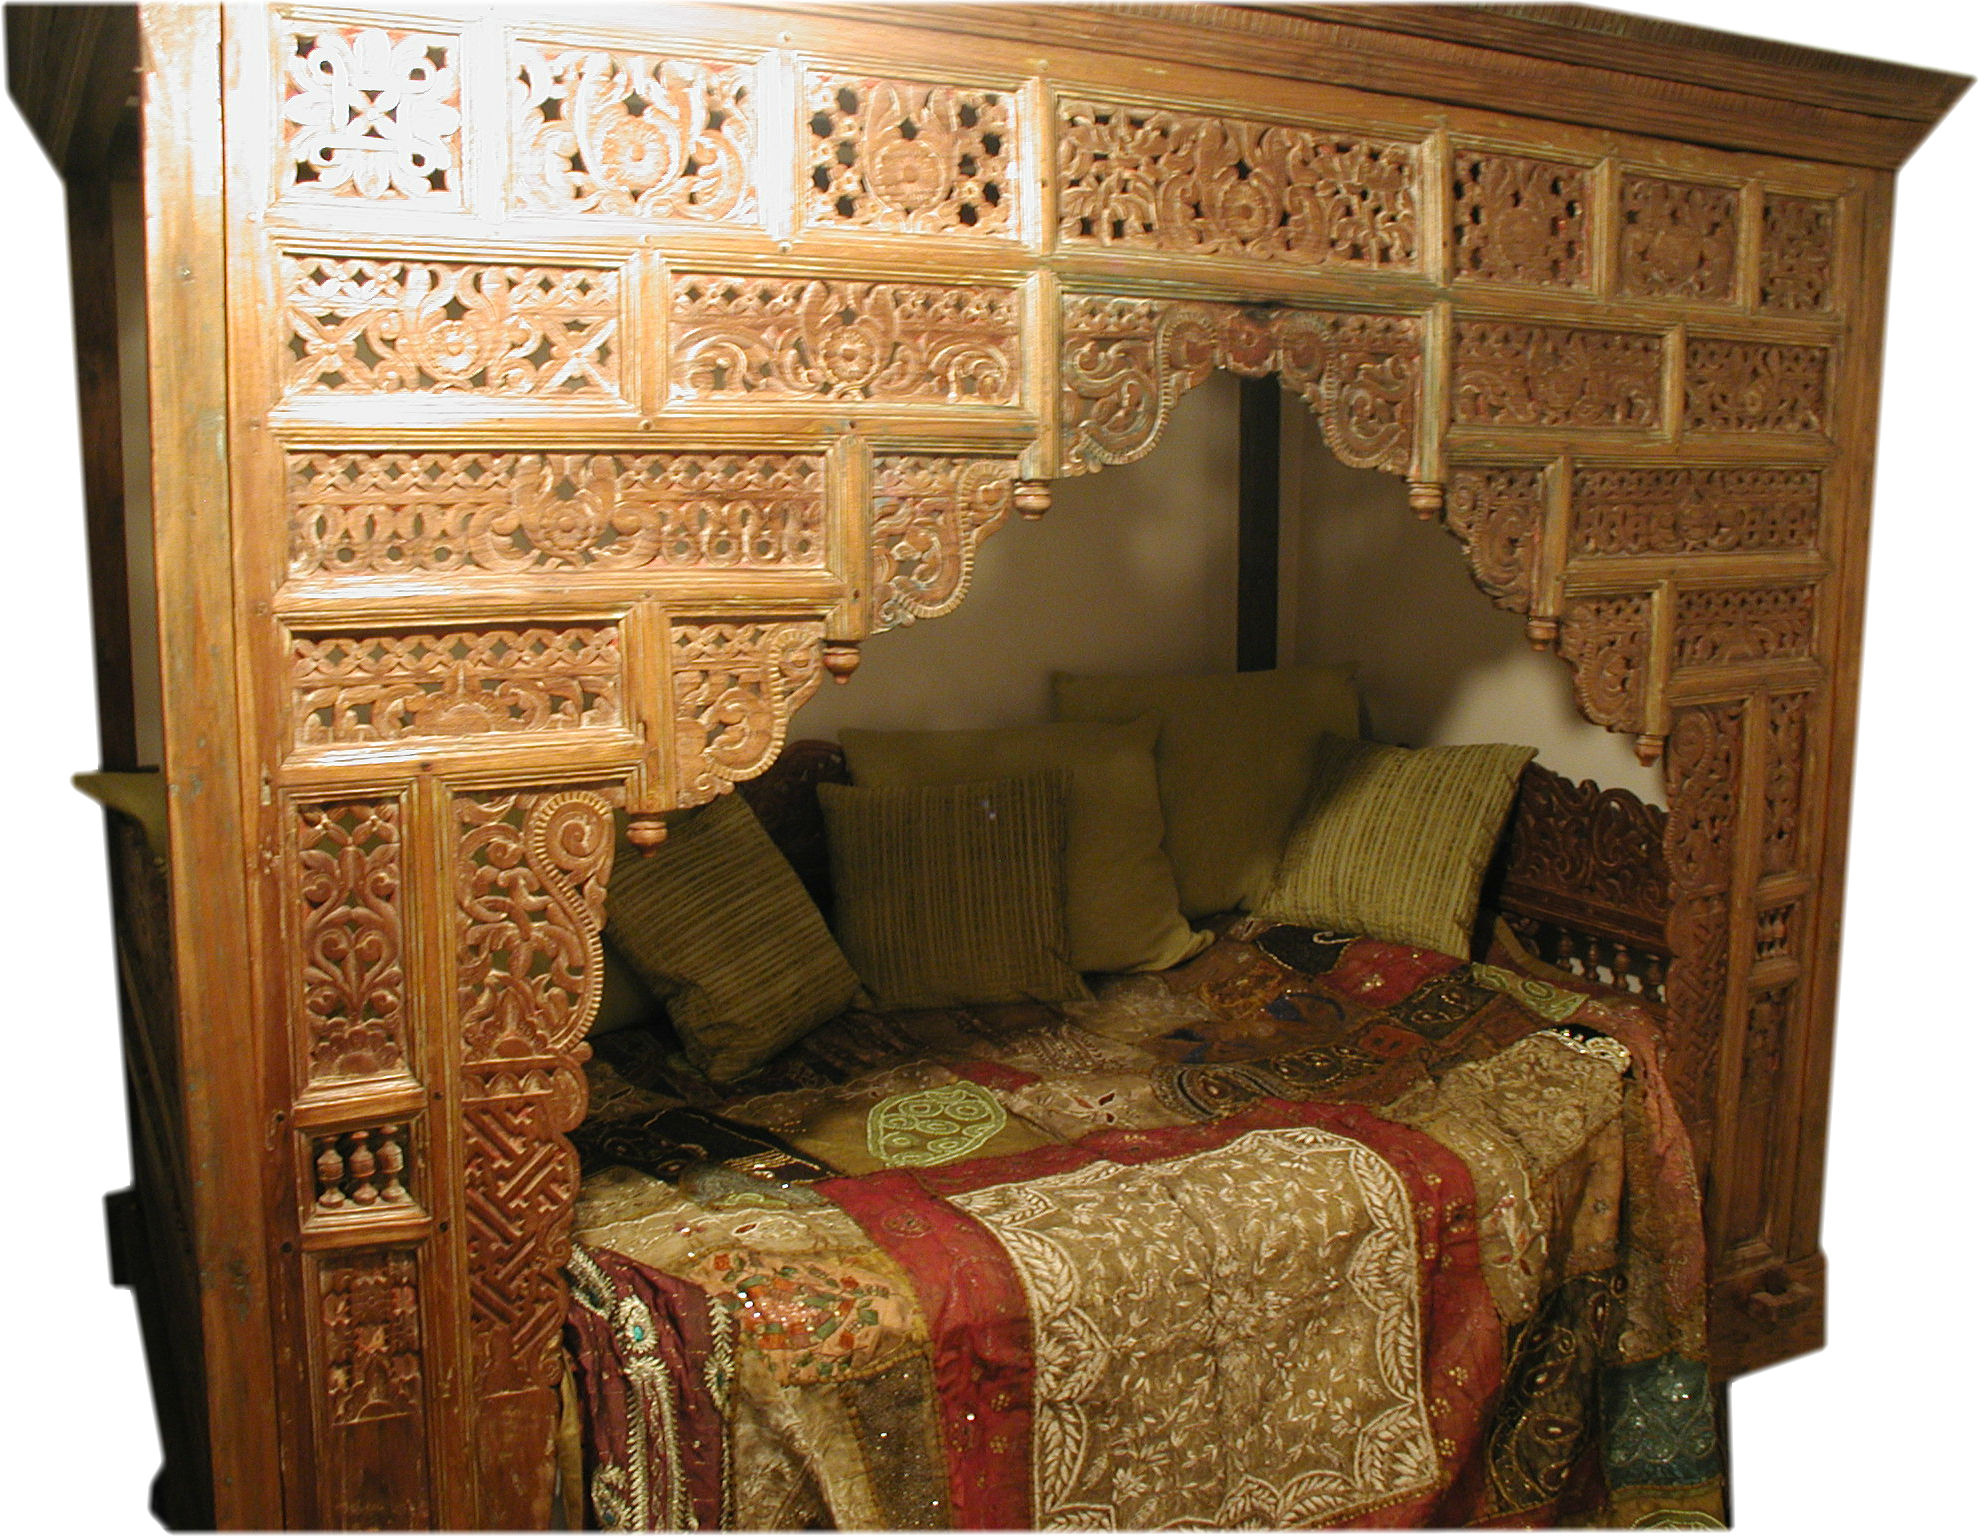 Sell My Javanese Bed For Me